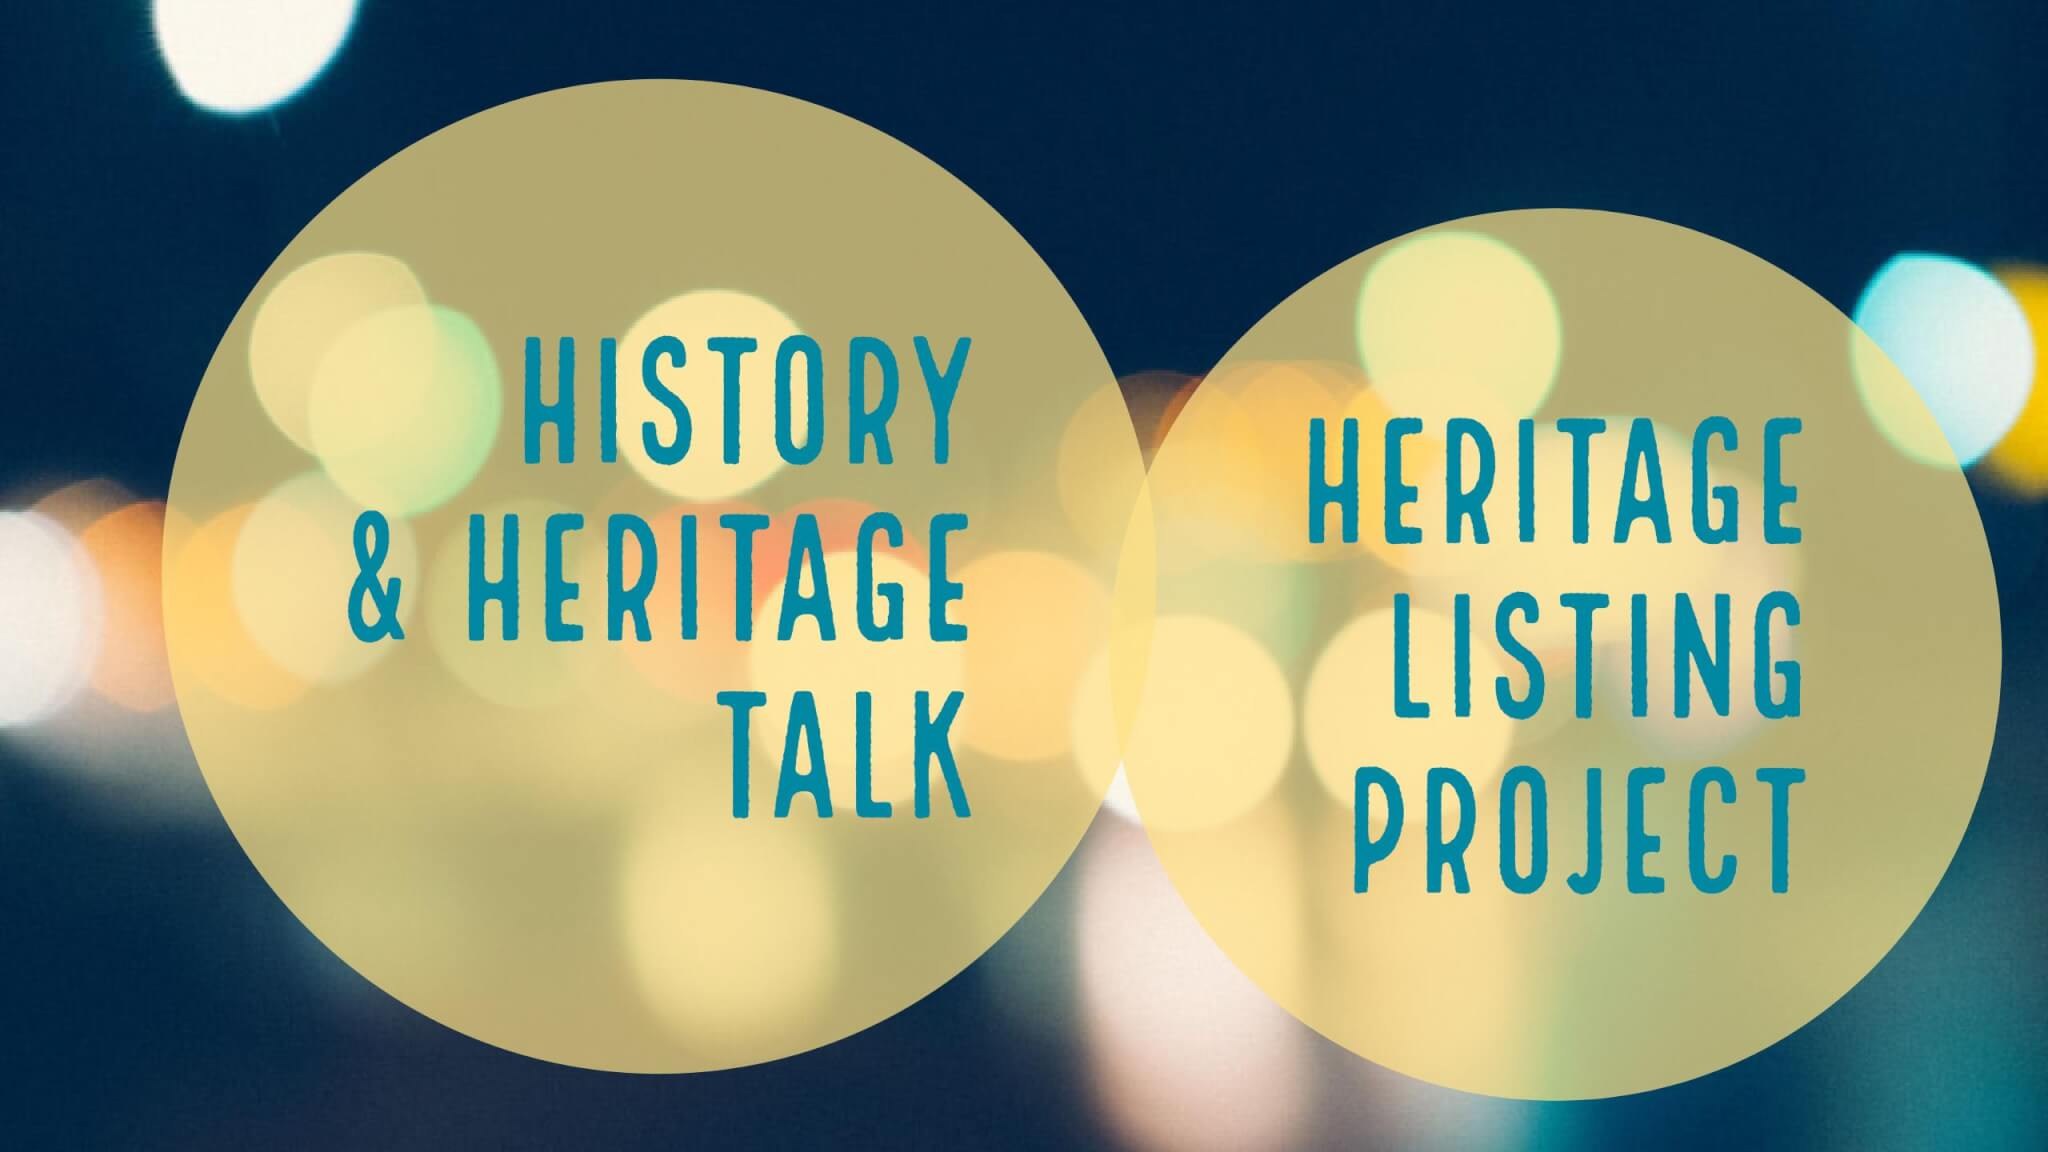 History and Heritage Talk Heritage Listing Project